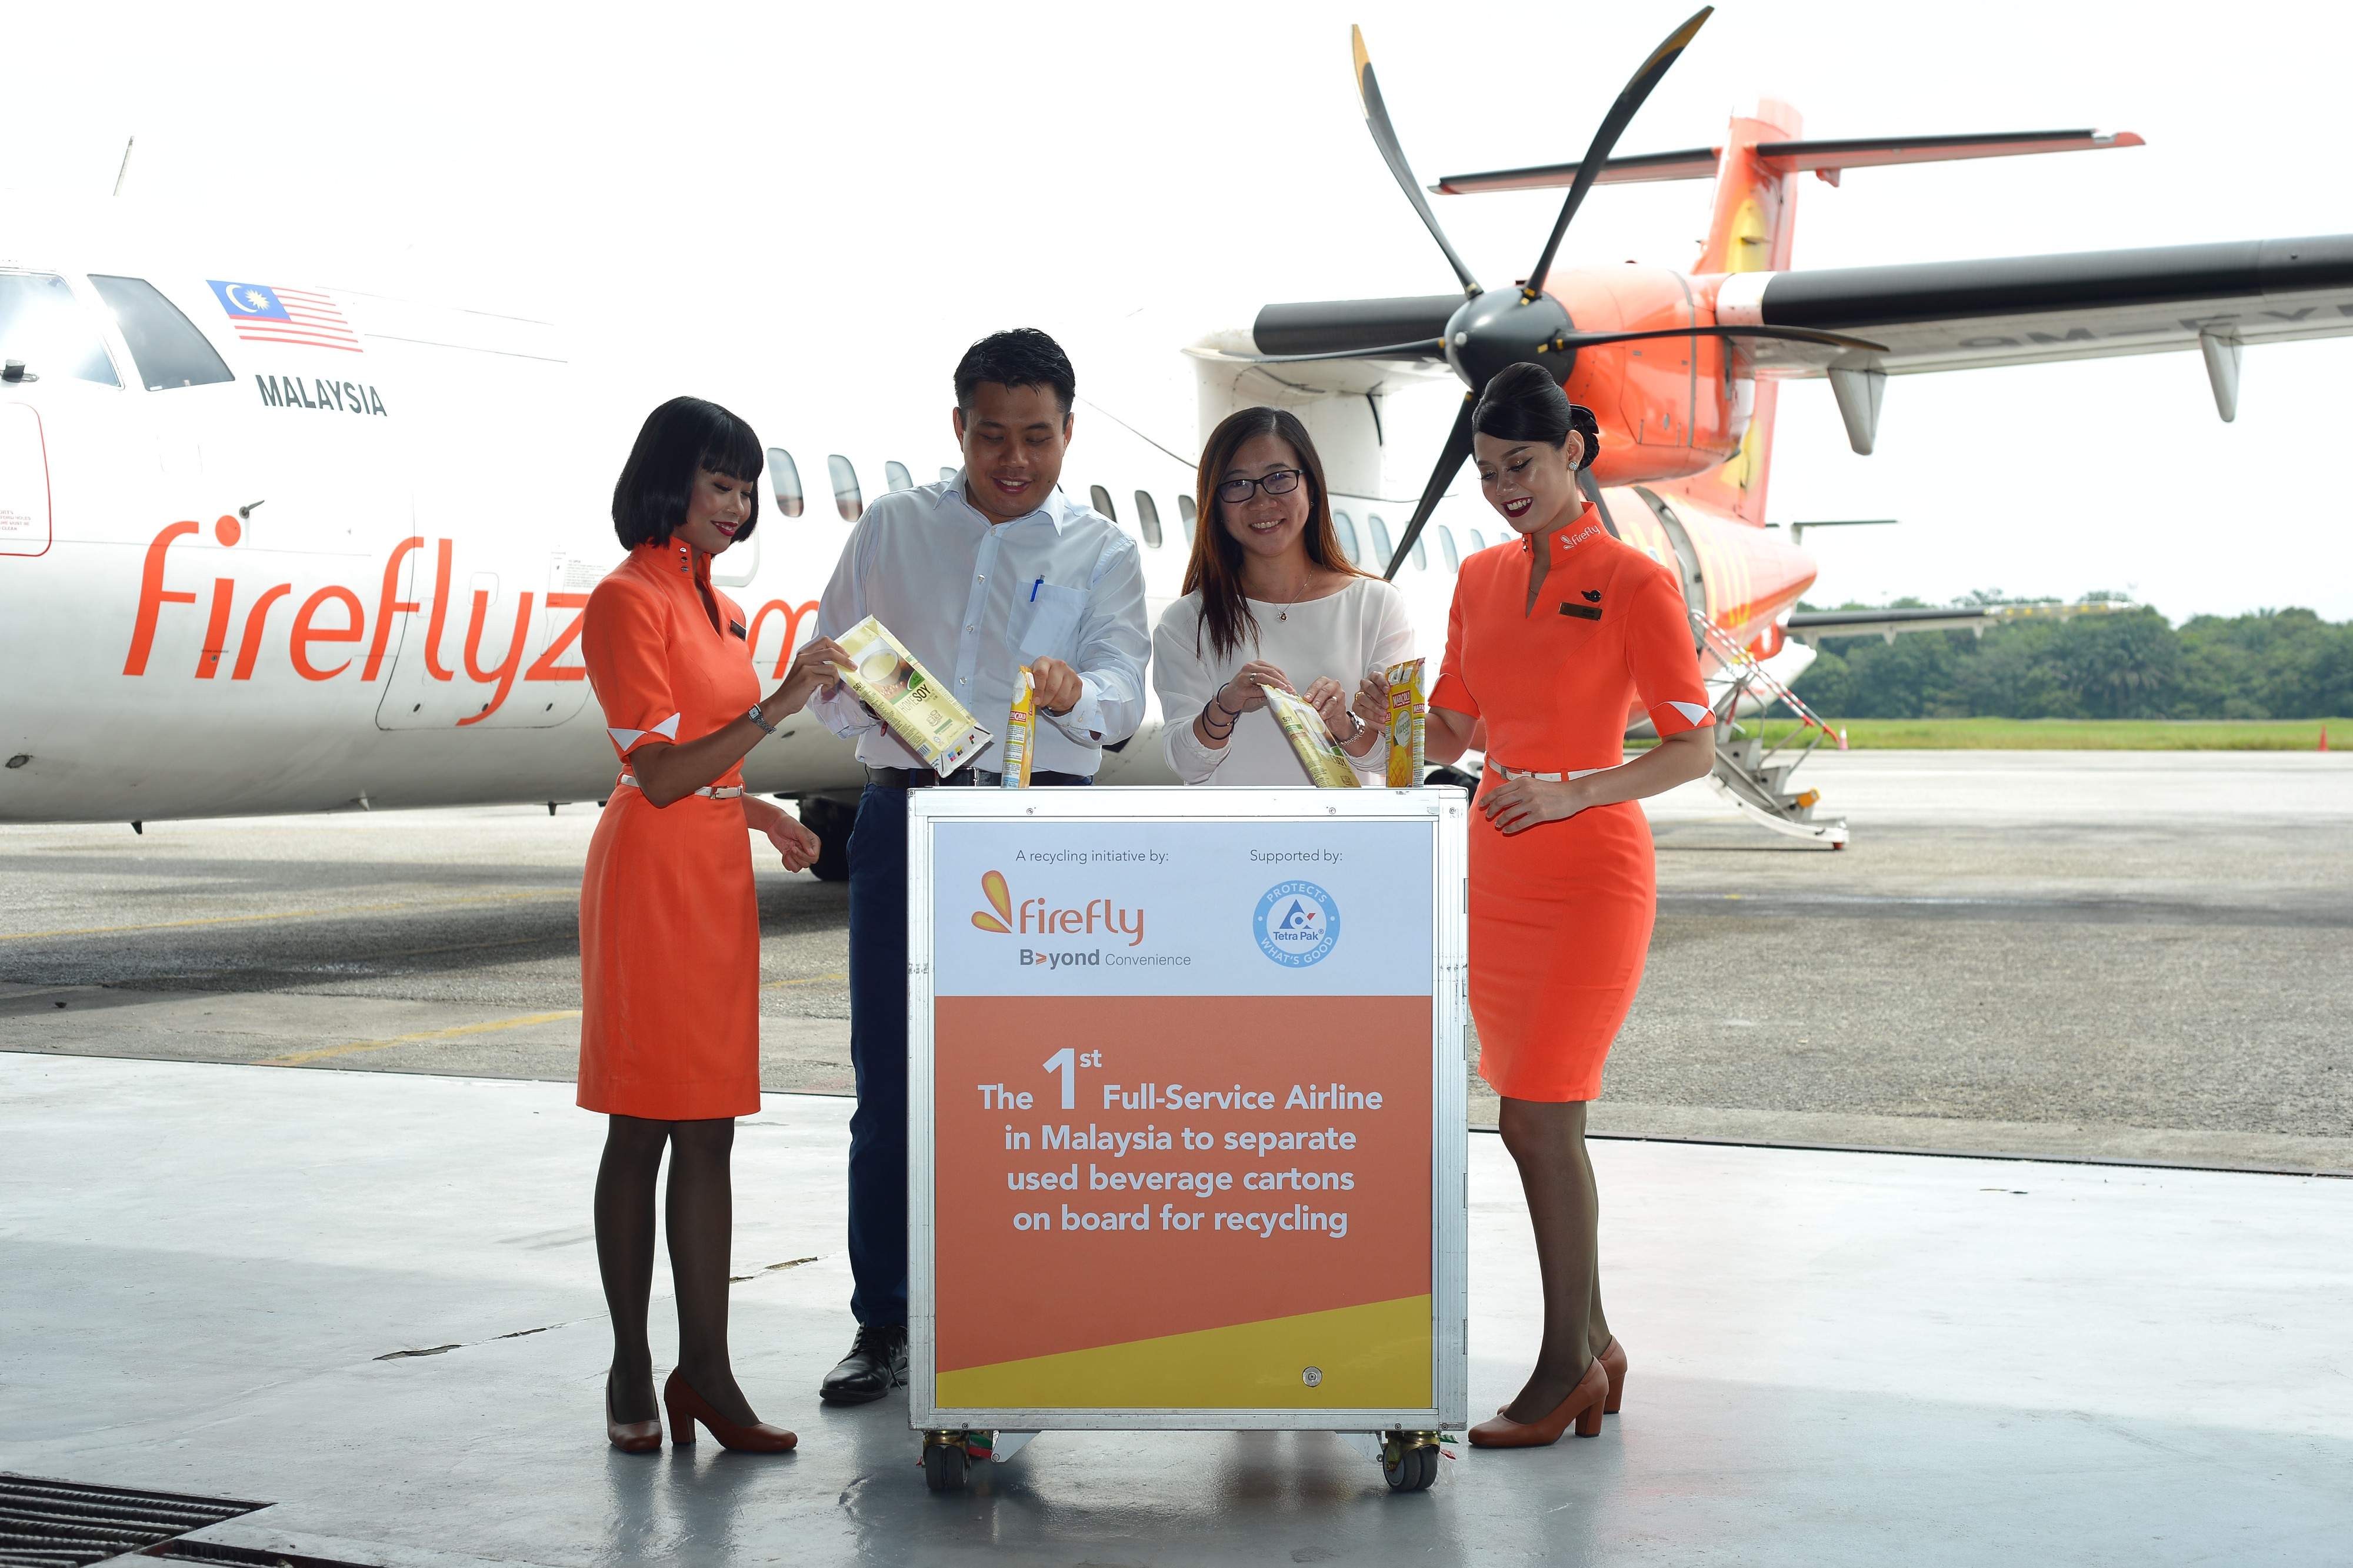 Inflight Beverage Carton Recycling: An Initiative by Firefly